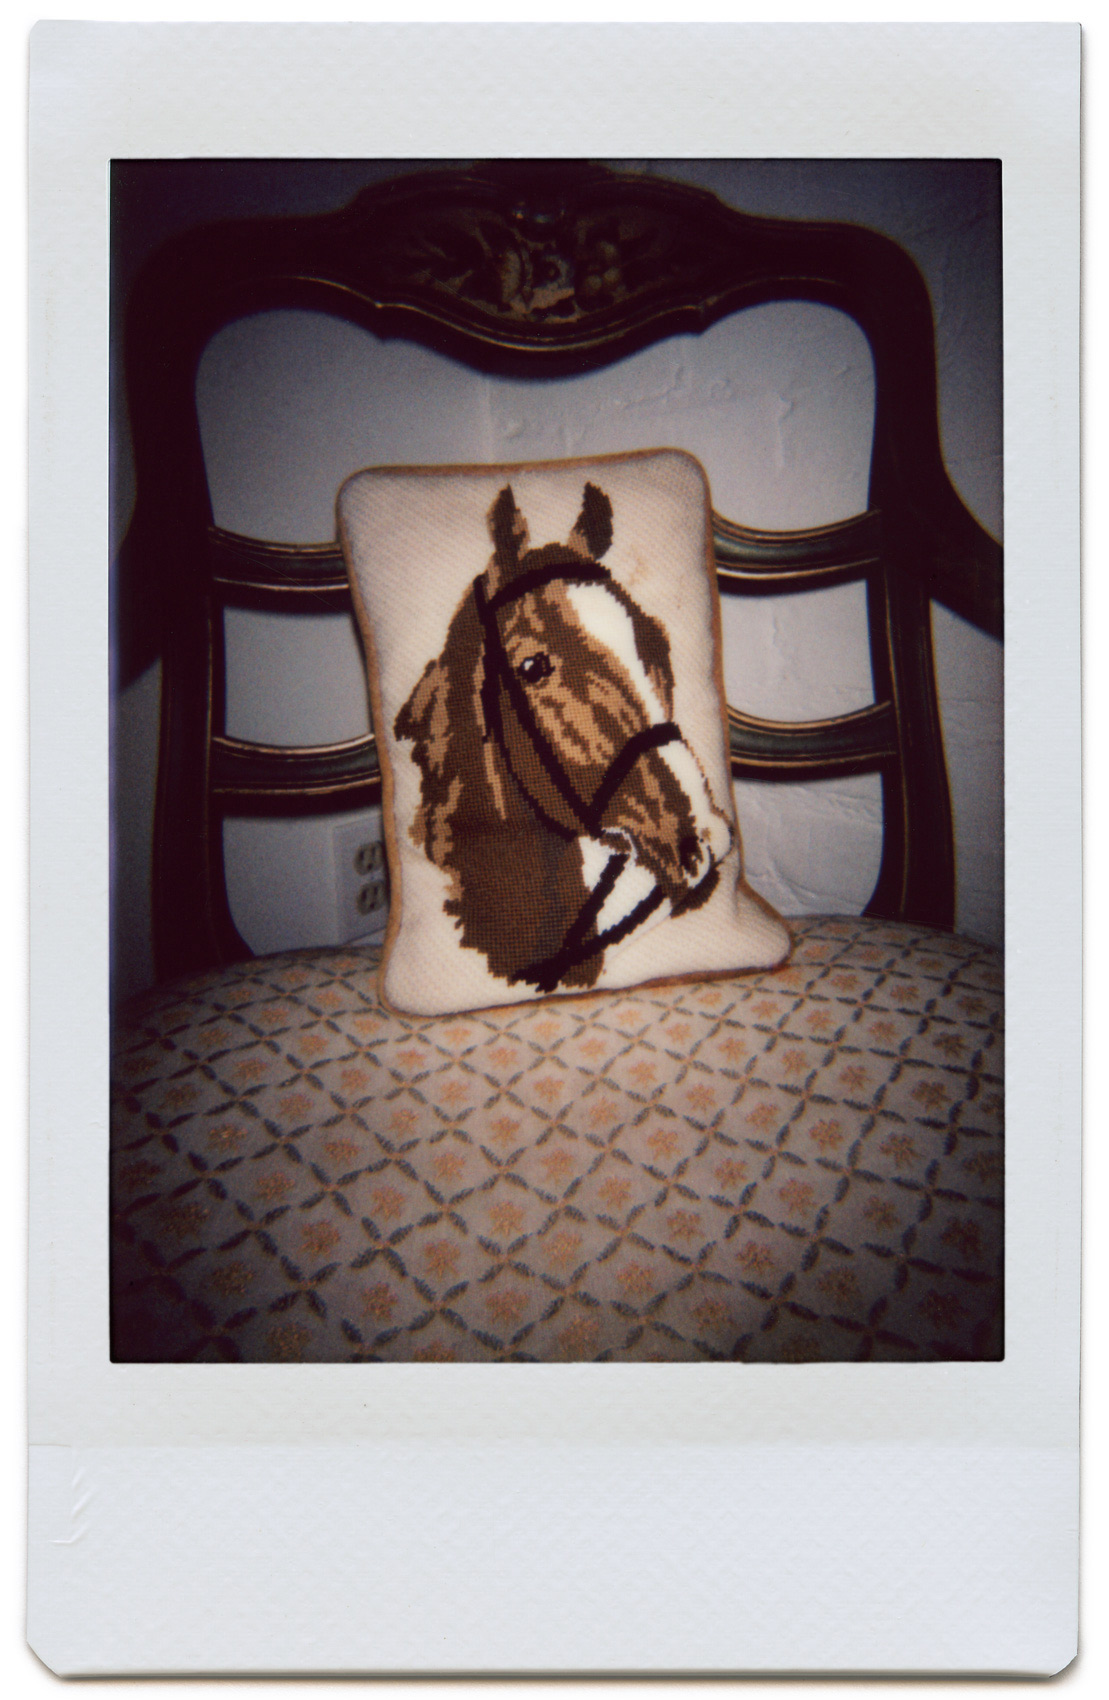 Horse_Pillow_Stitch